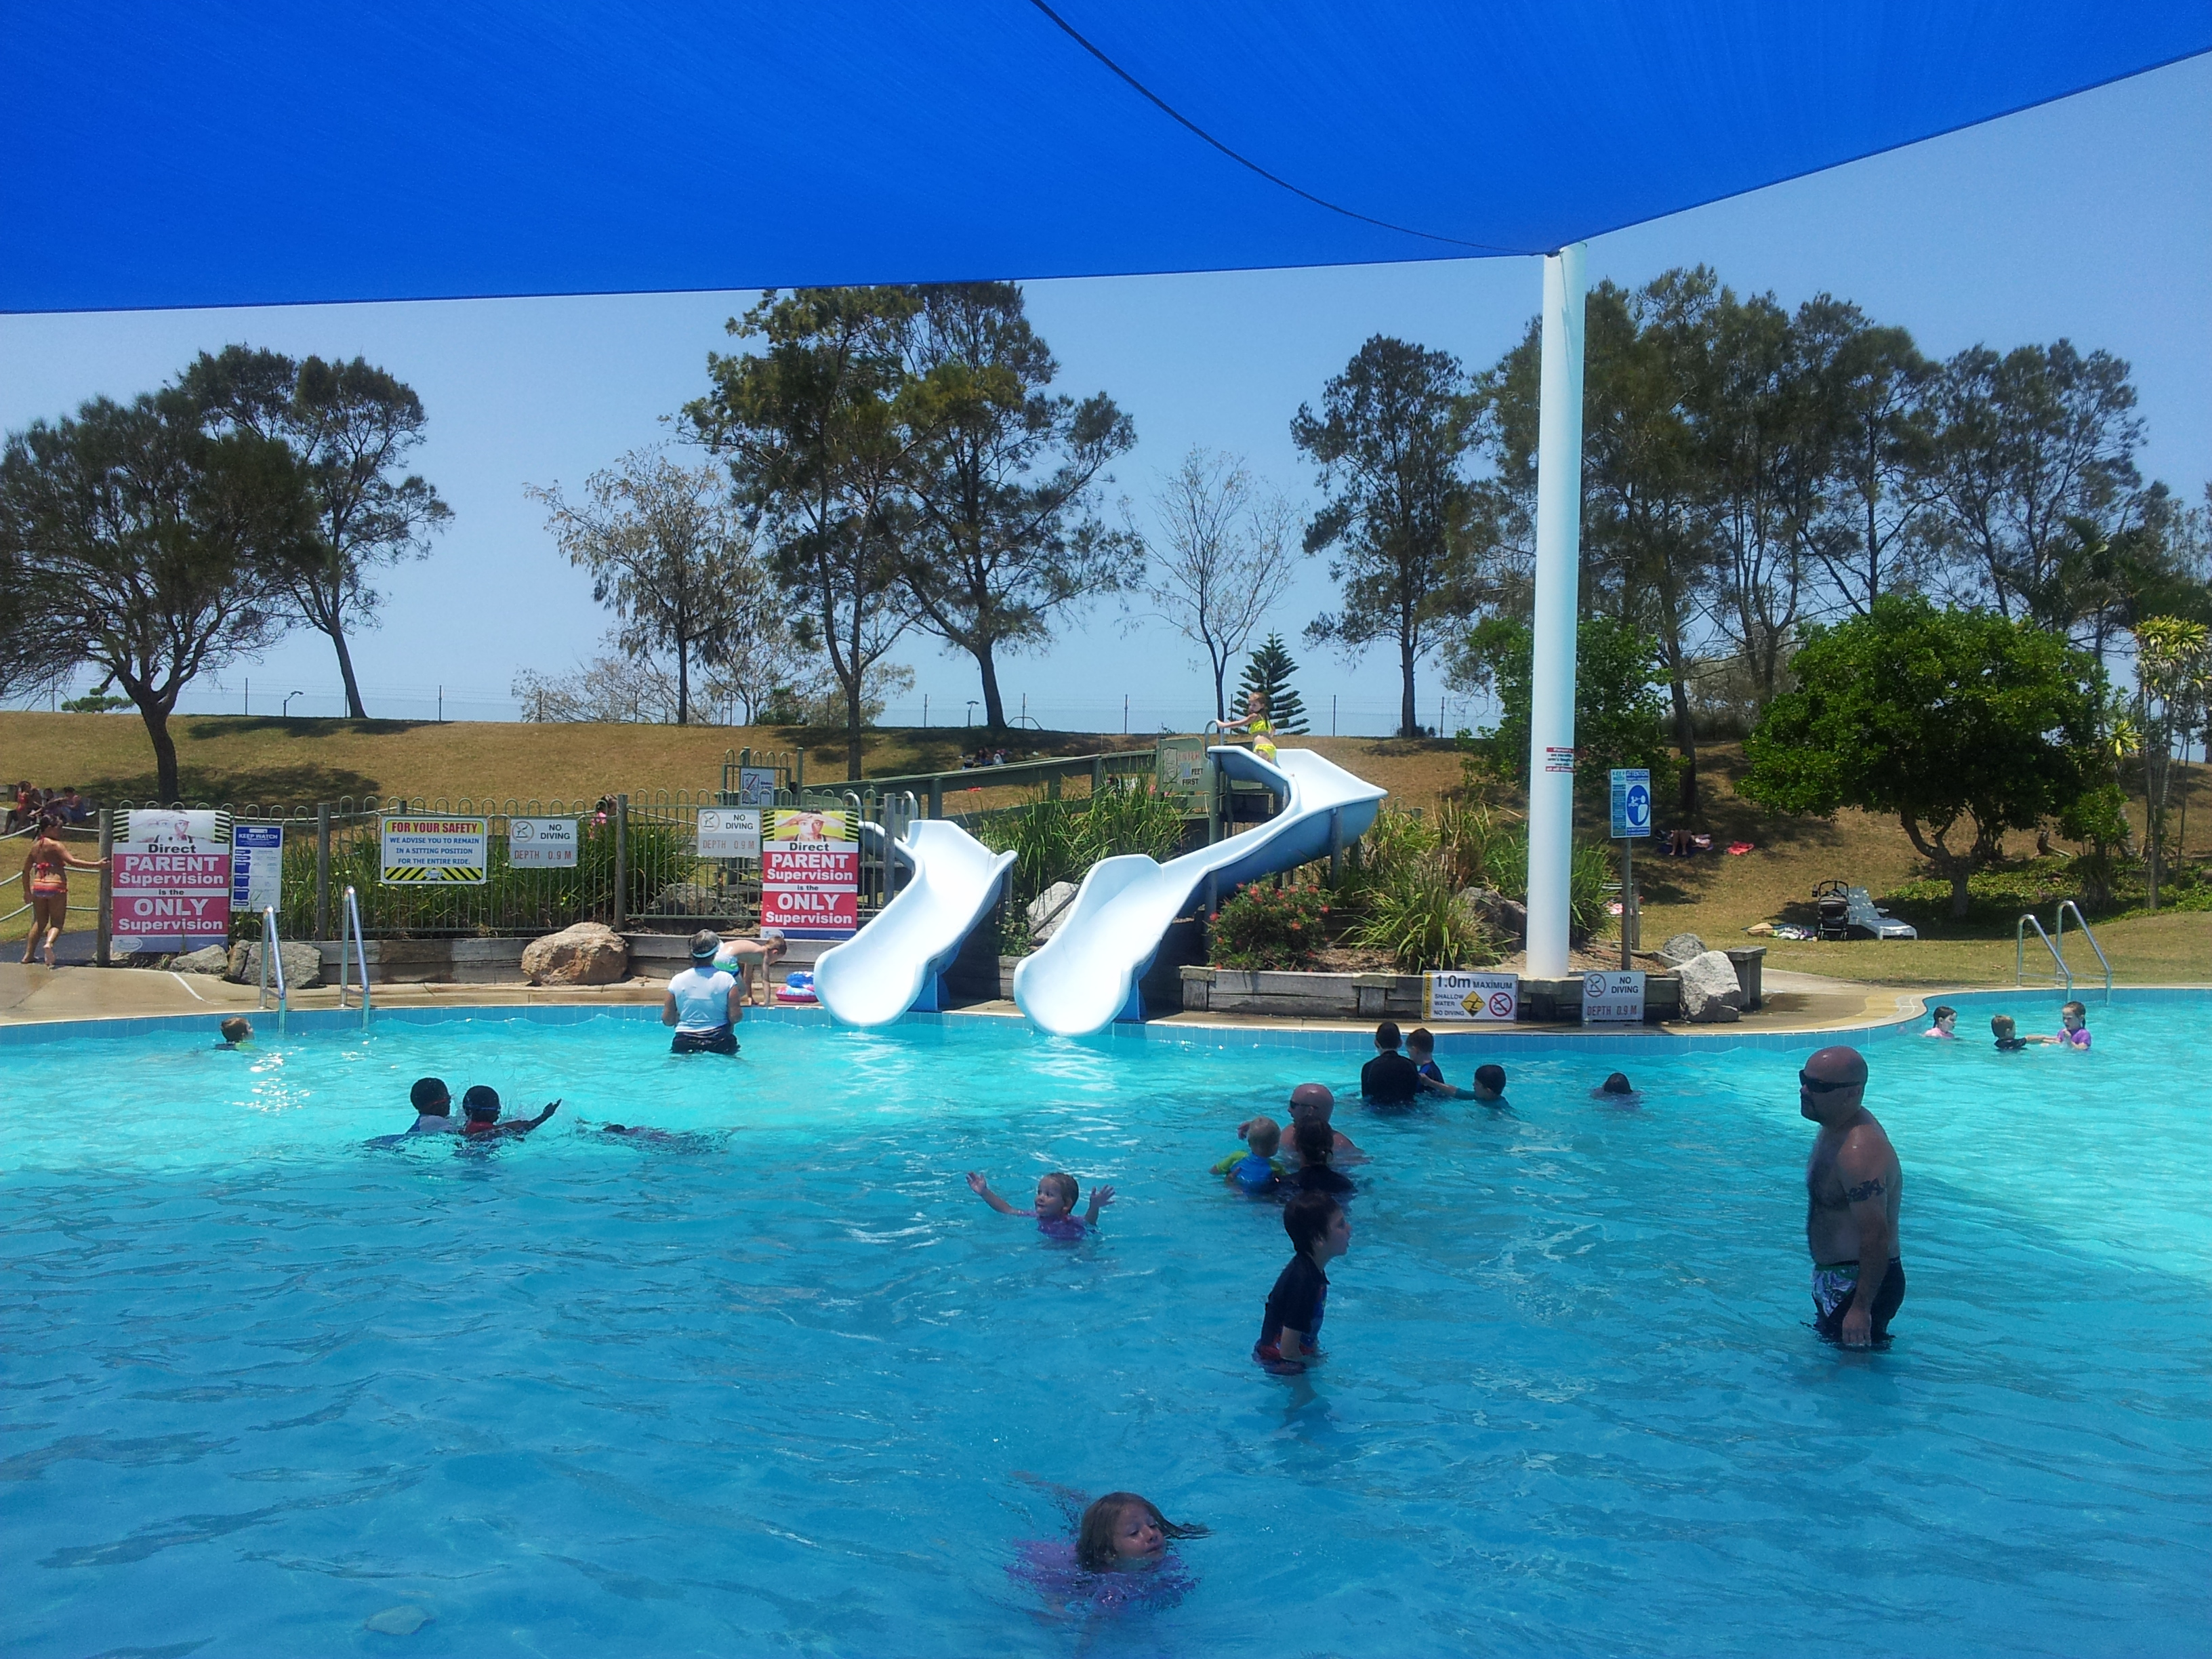 25 Perfect Public Swimming Pools With Slides